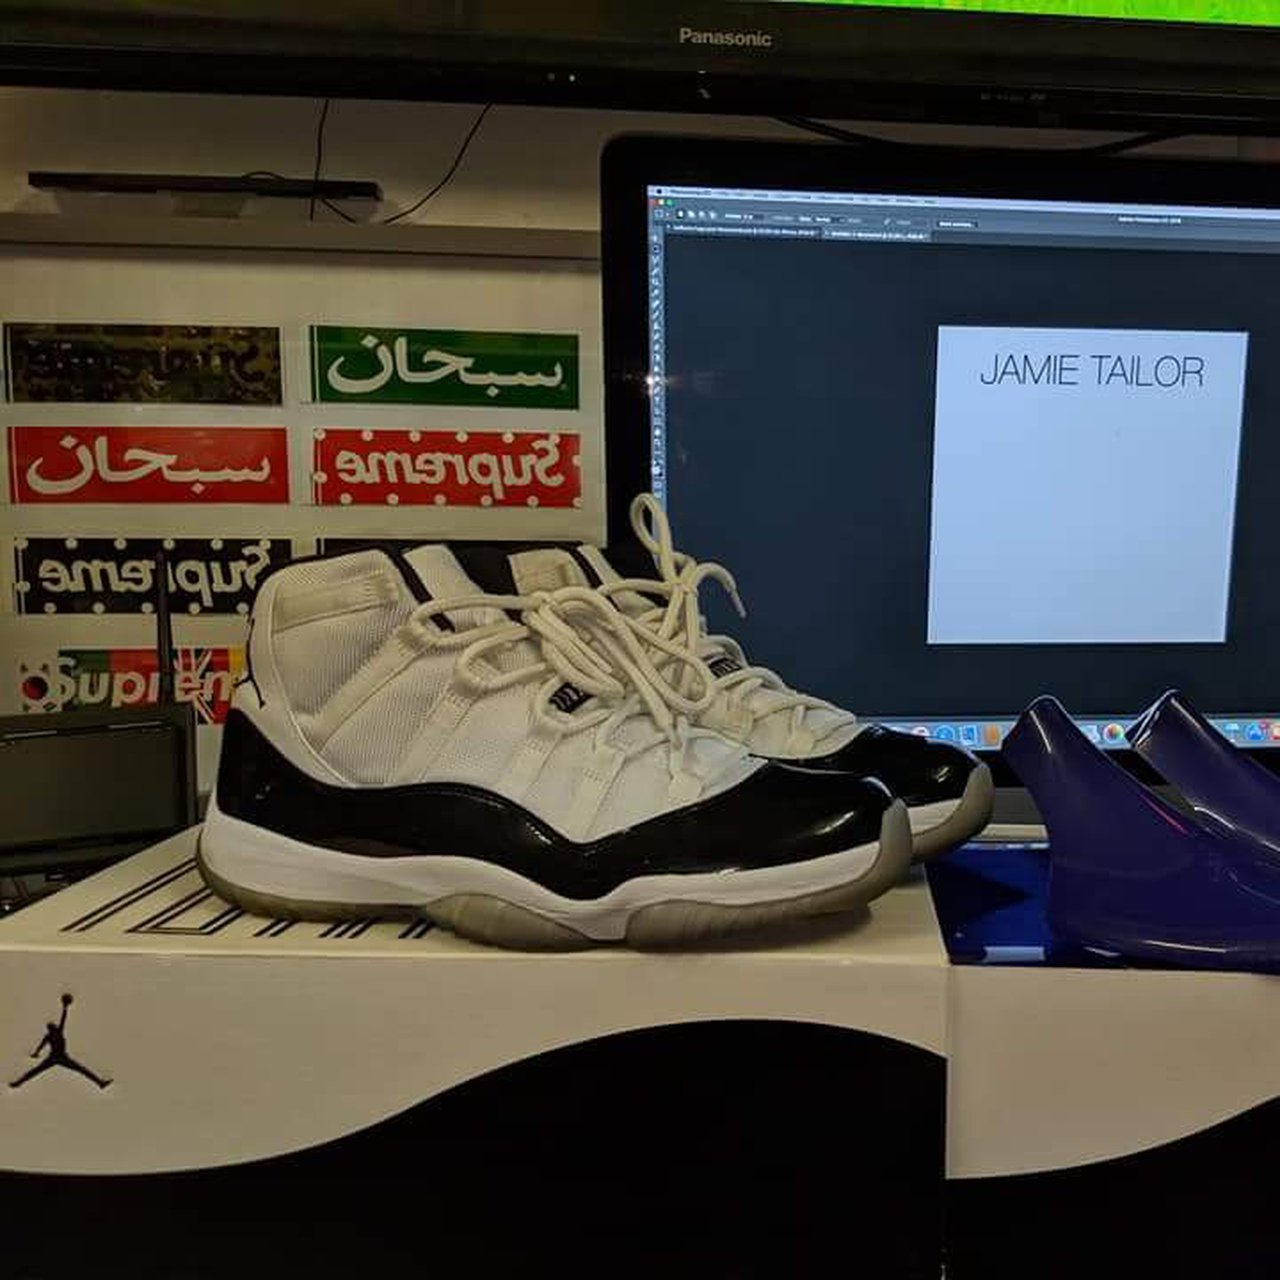 0a74f1e37a4 Jordan 11 Concord 9-10 23 on the back 🔥 Pm for info - Depop